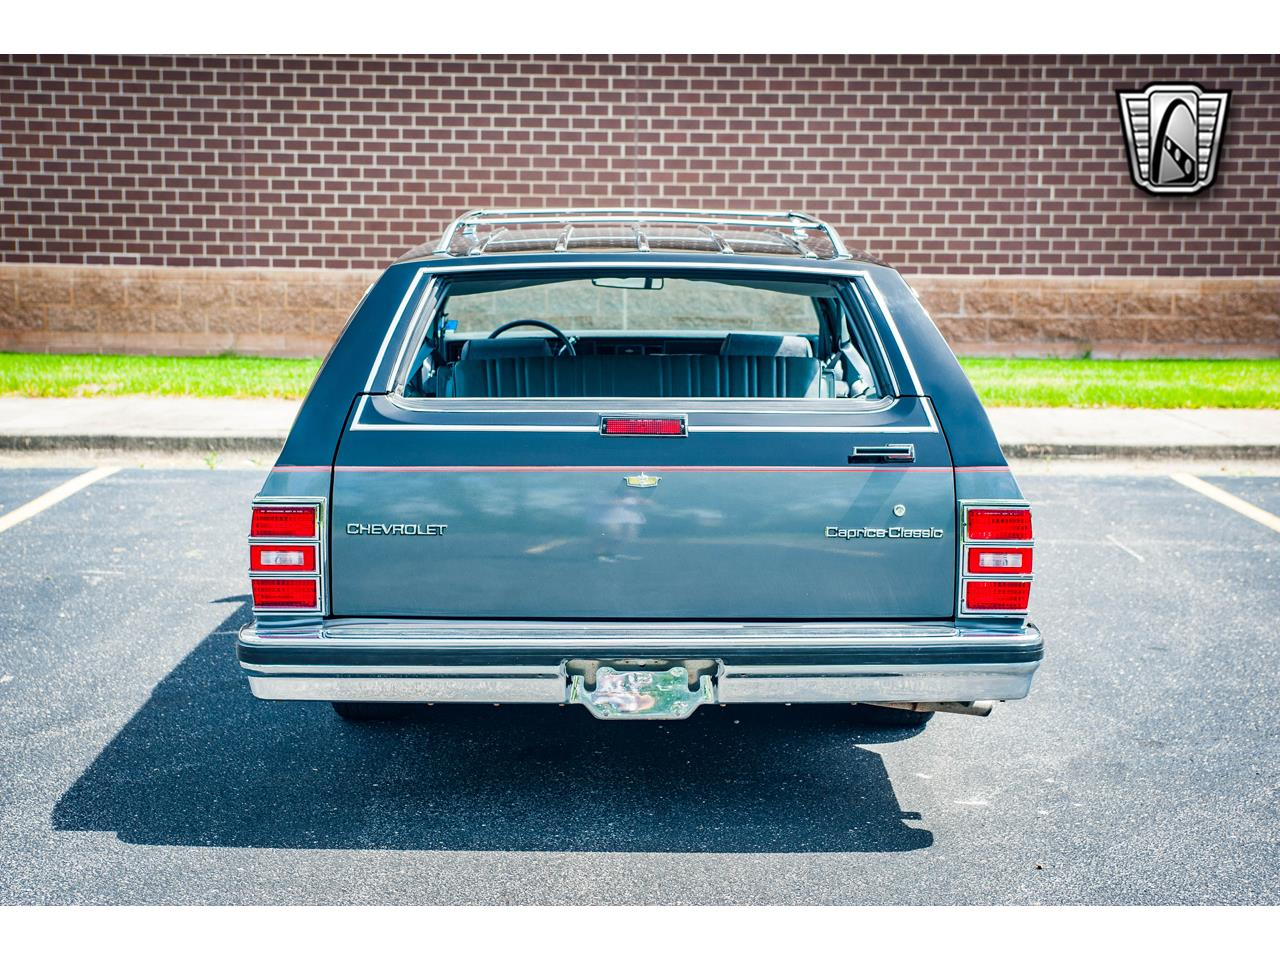 Large Picture of 1989 Caprice located in Illinois - $17,995.00 Offered by Gateway Classic Cars - St. Louis - QB9K